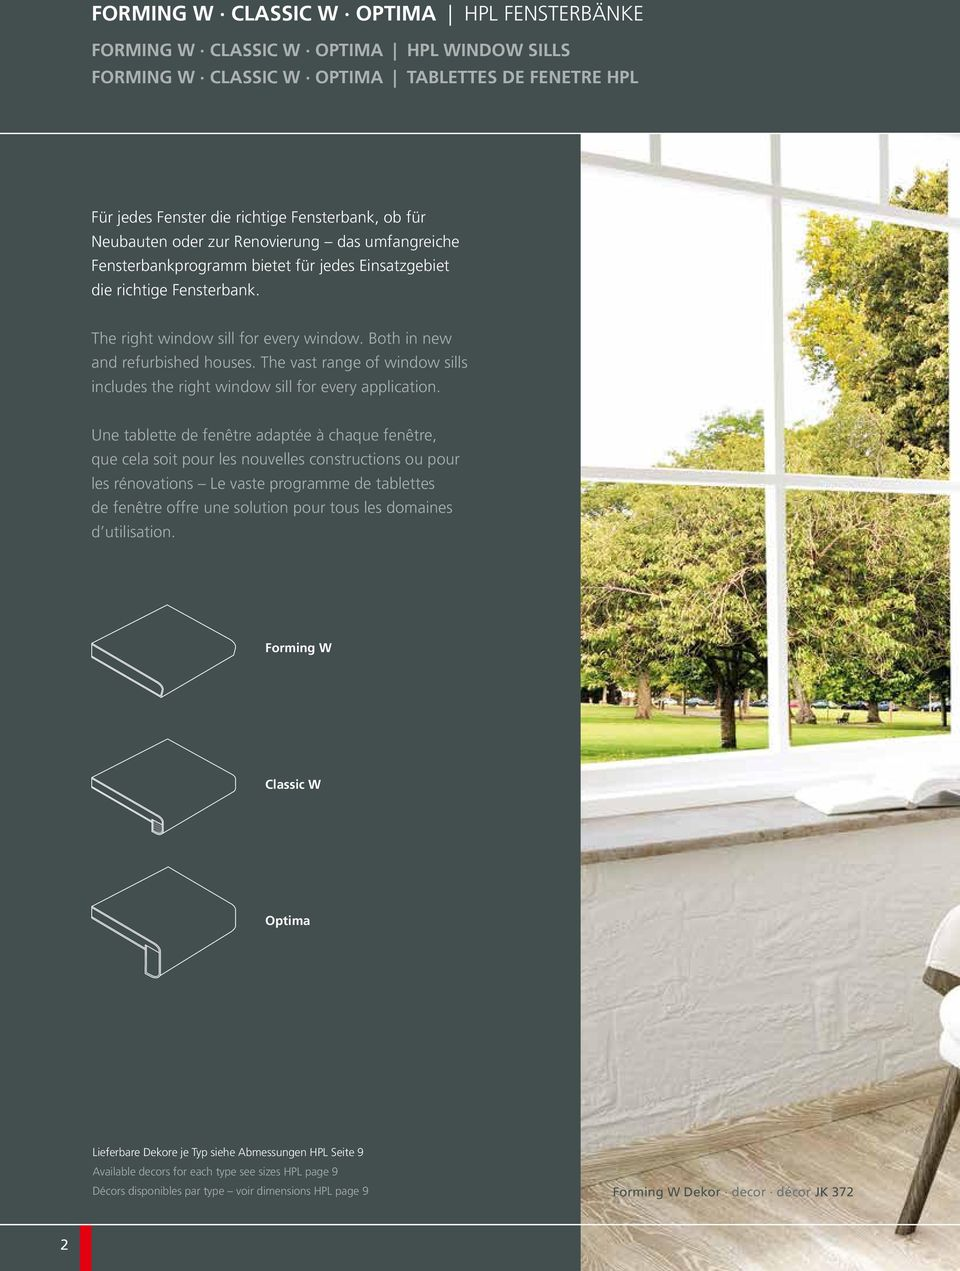 The vast range of window sills includes the right window sill for every application.